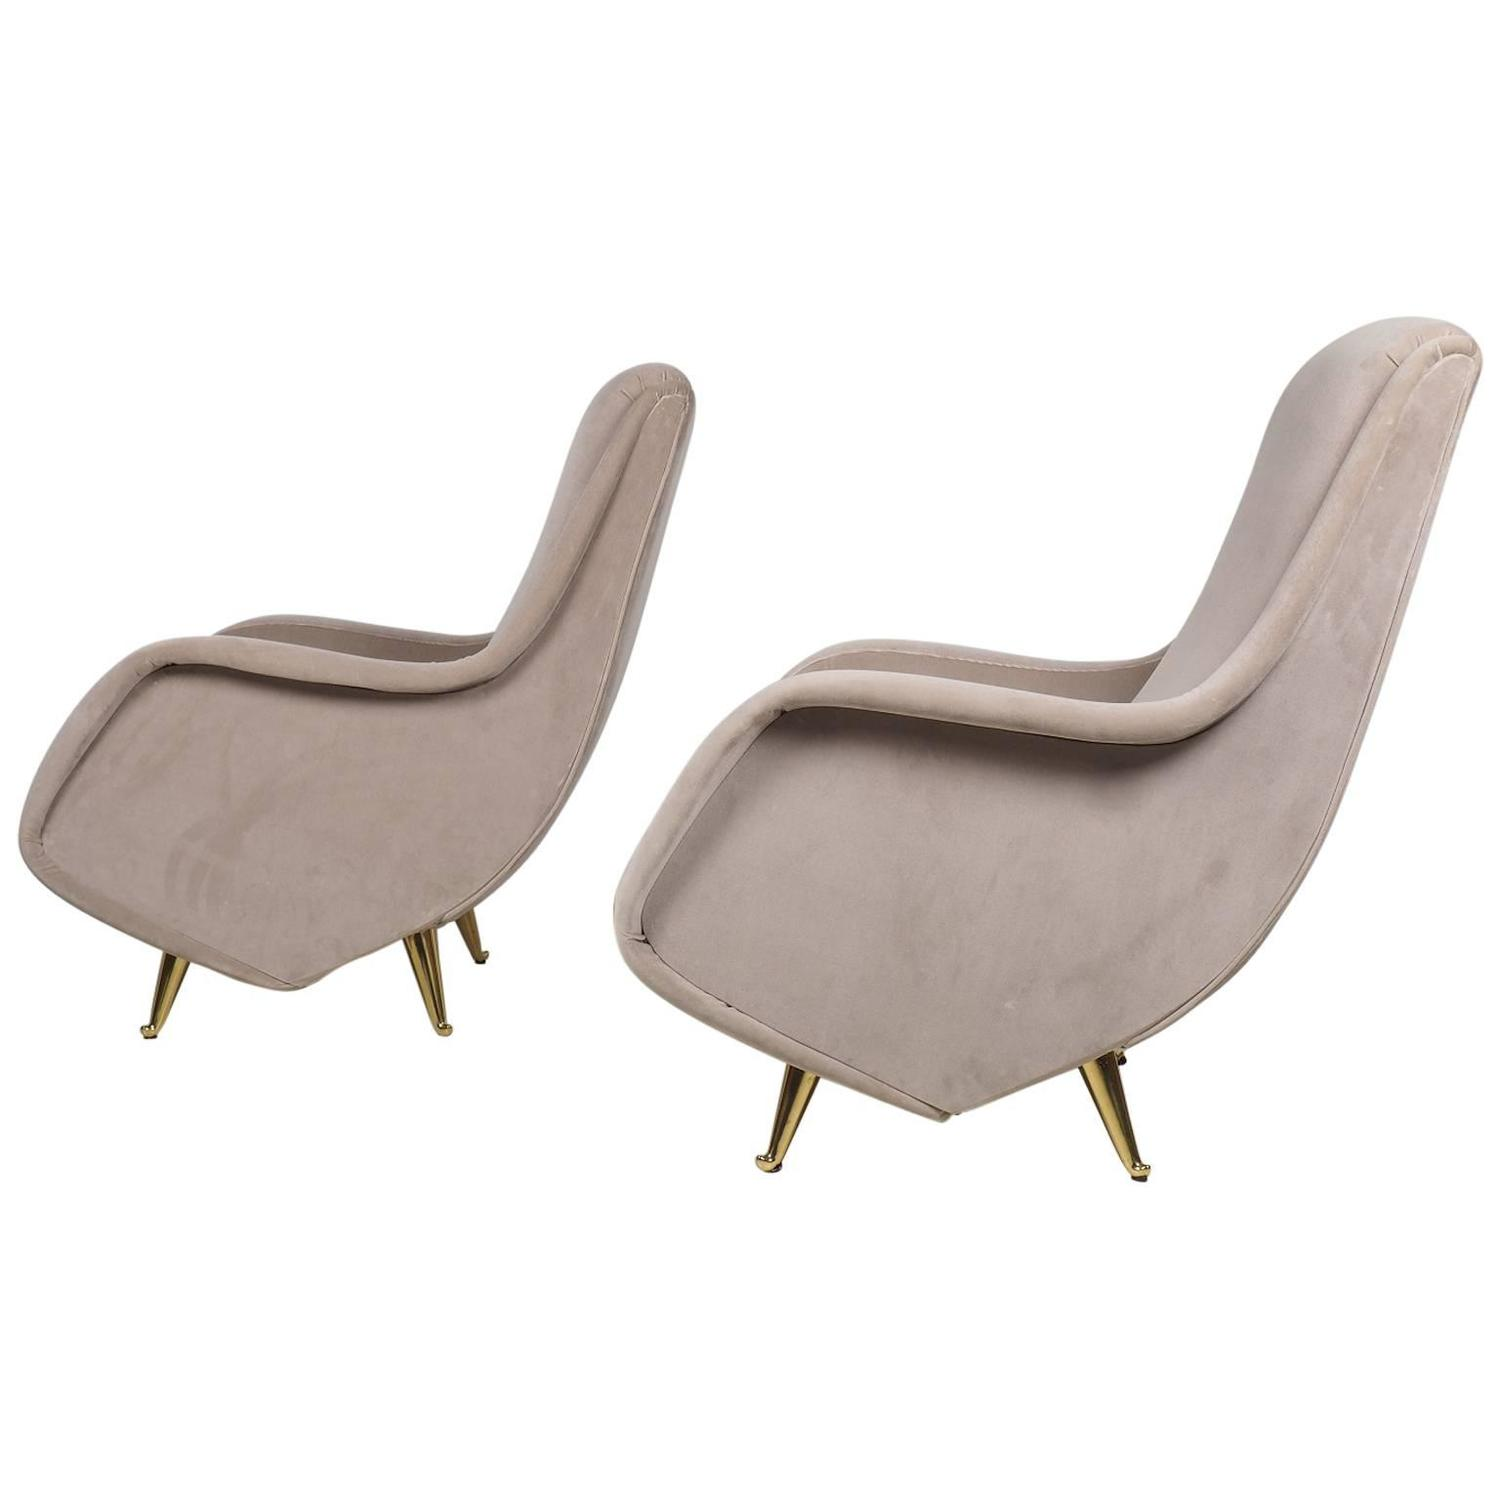 Italian lounge chairs manufactured by isa bergamo italy for Isa arredamenti